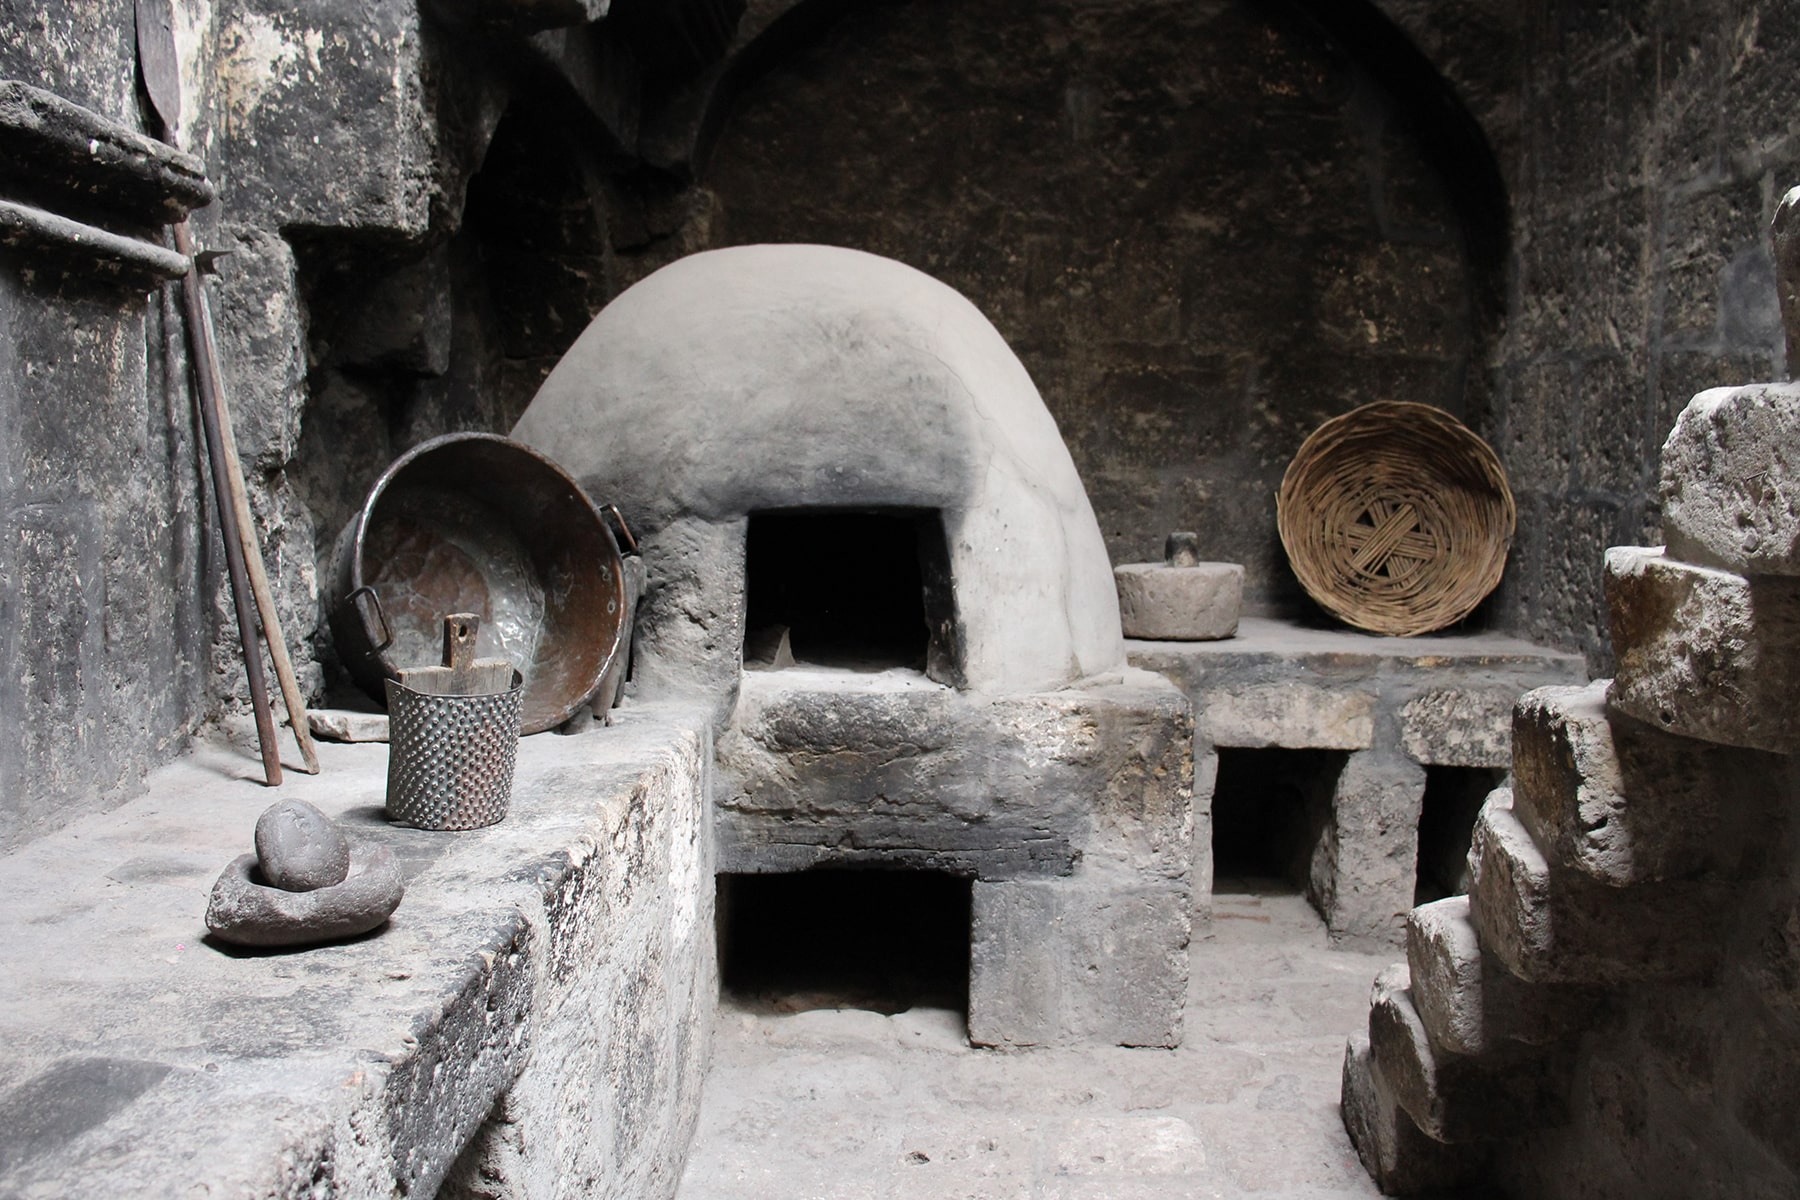 A kitchen in the Monastery of Santa Catalina Arequipa